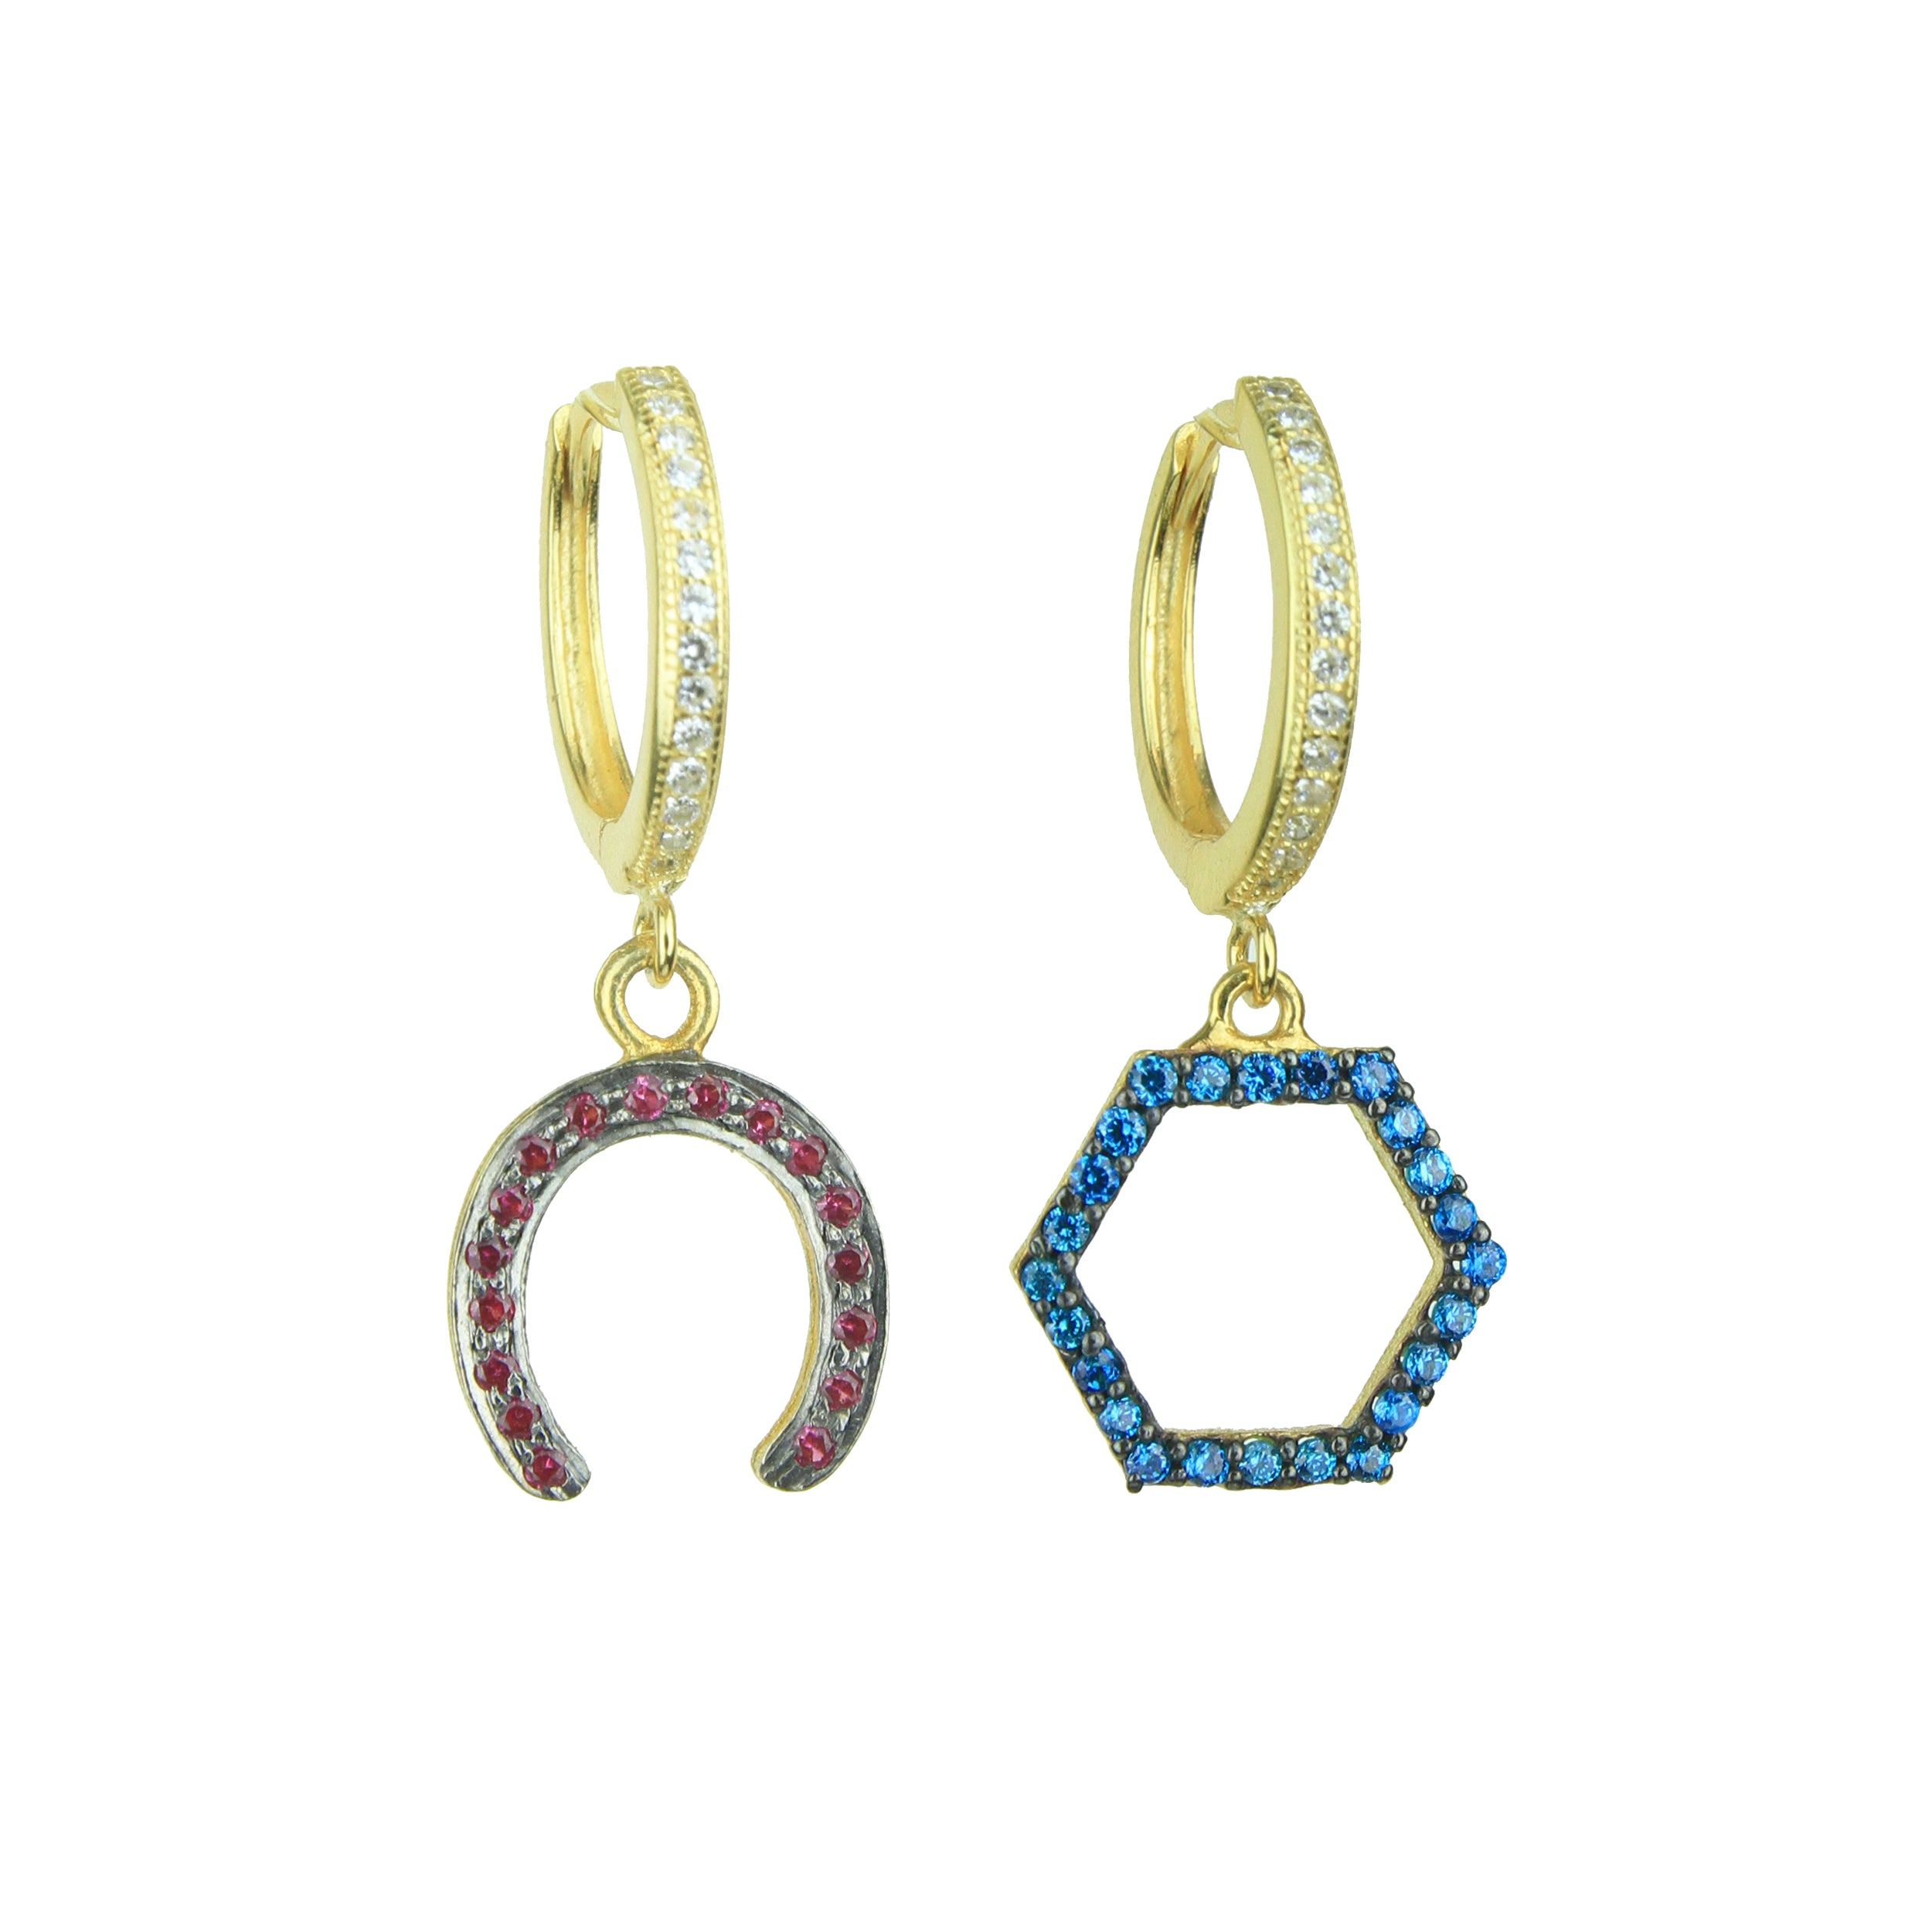 Eugenia Gold Plated 925 Sterling Silver Hoops with Charms